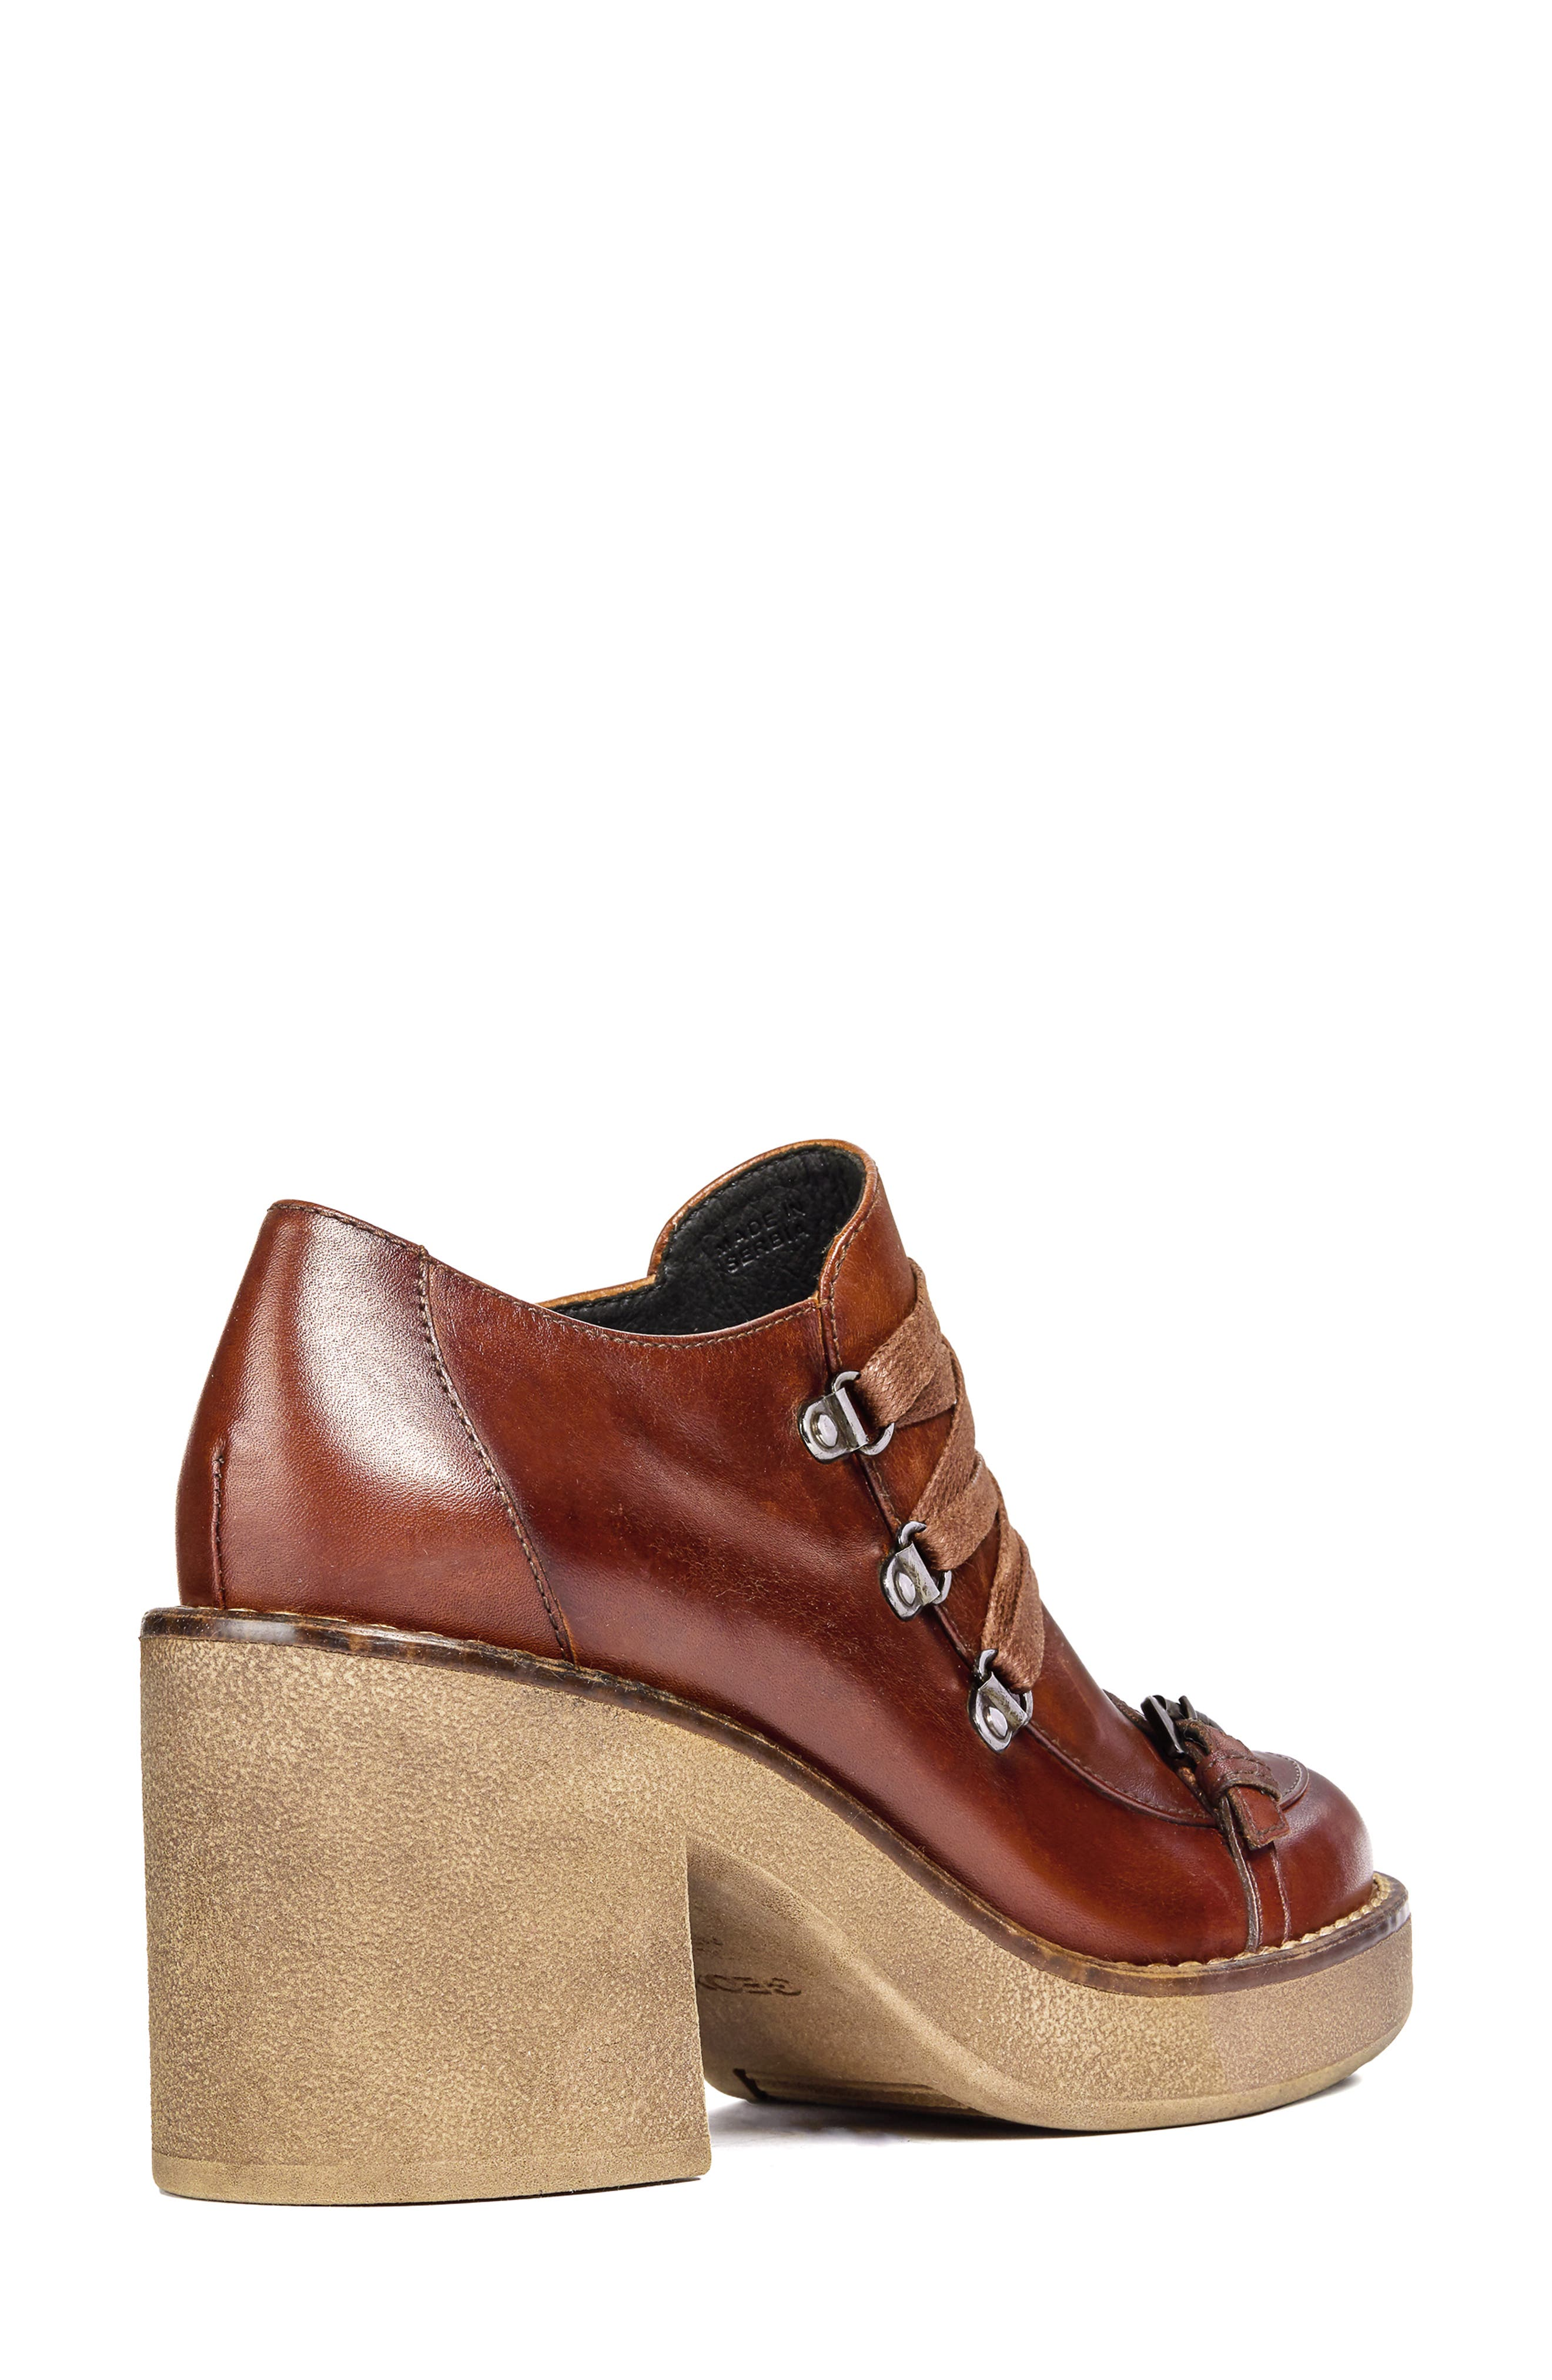 Adrya Bootie,                             Alternate thumbnail 6, color,                             BROWN LEATHER